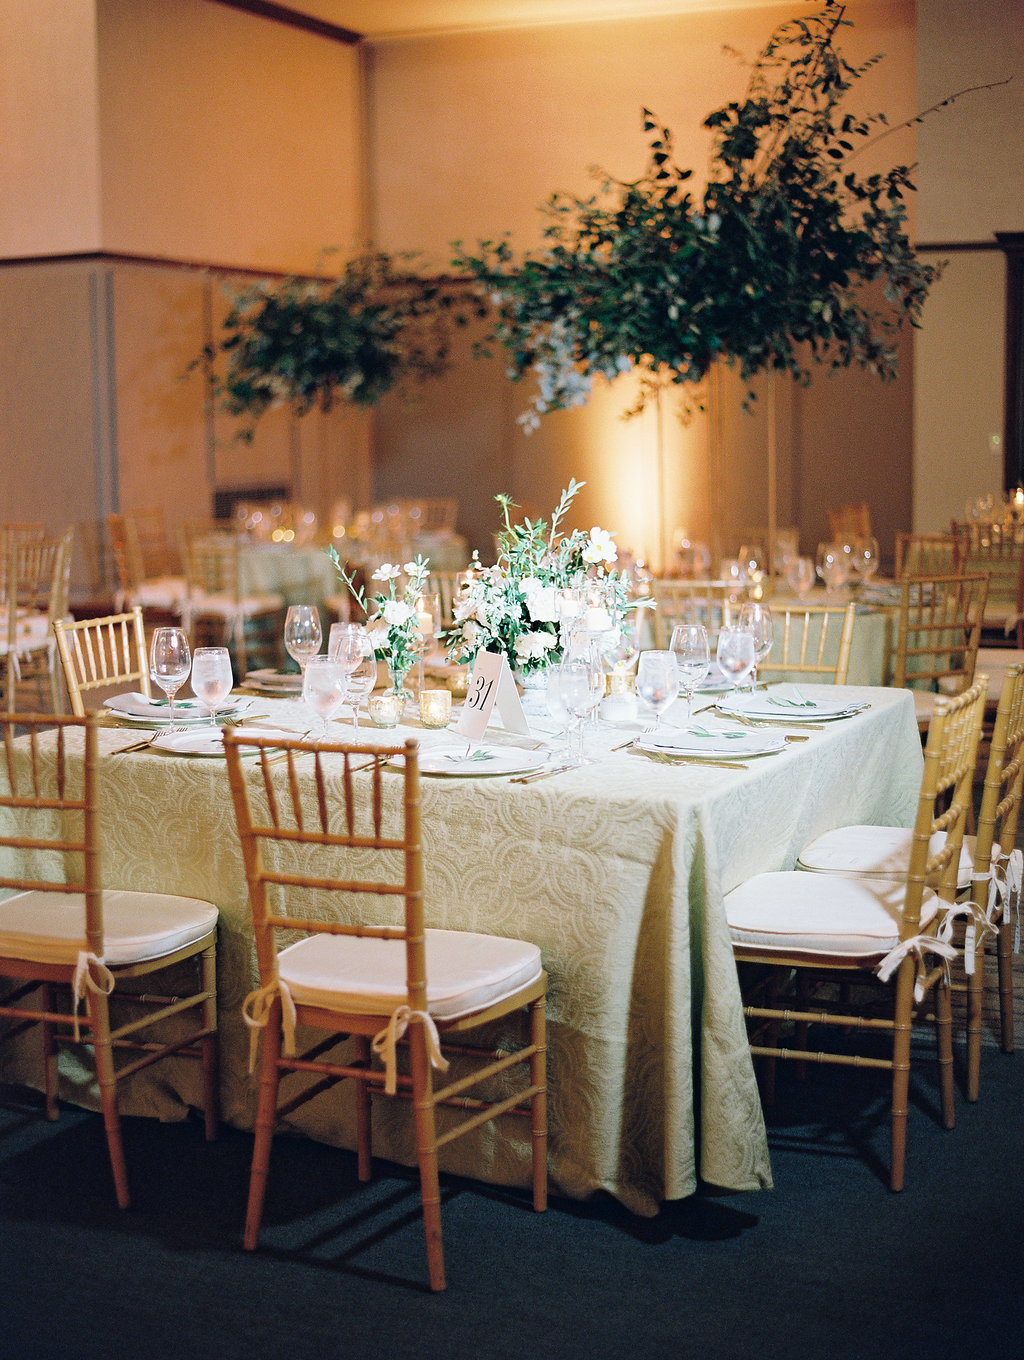 columbia-south-carolina-wedding-event-planner-jessica-rourke-203